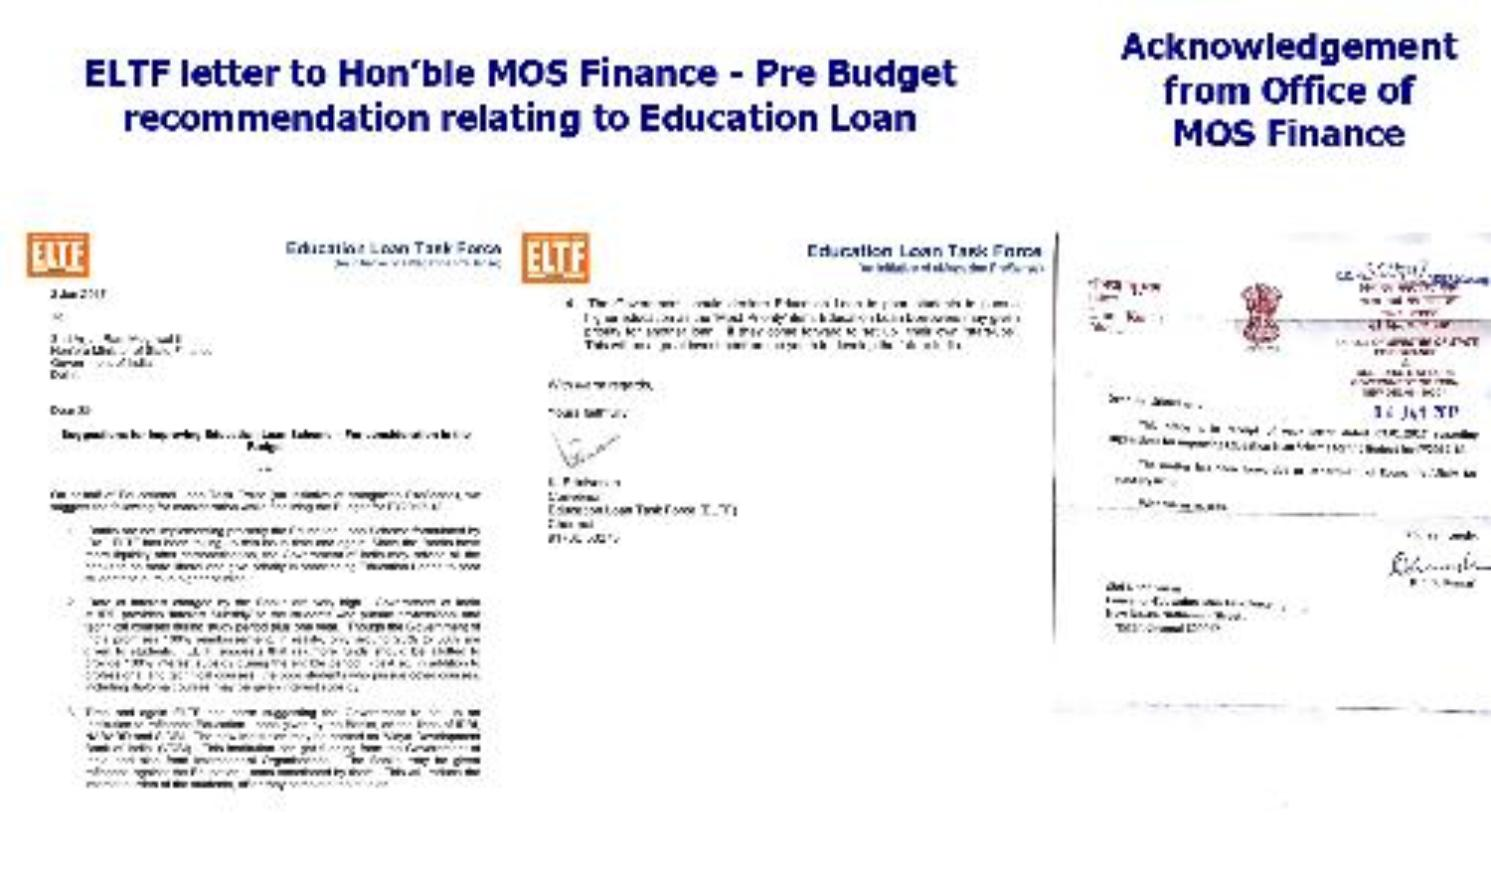 Pre-Budget recommendation by ELTF to Ministry of Finance on Education Loan